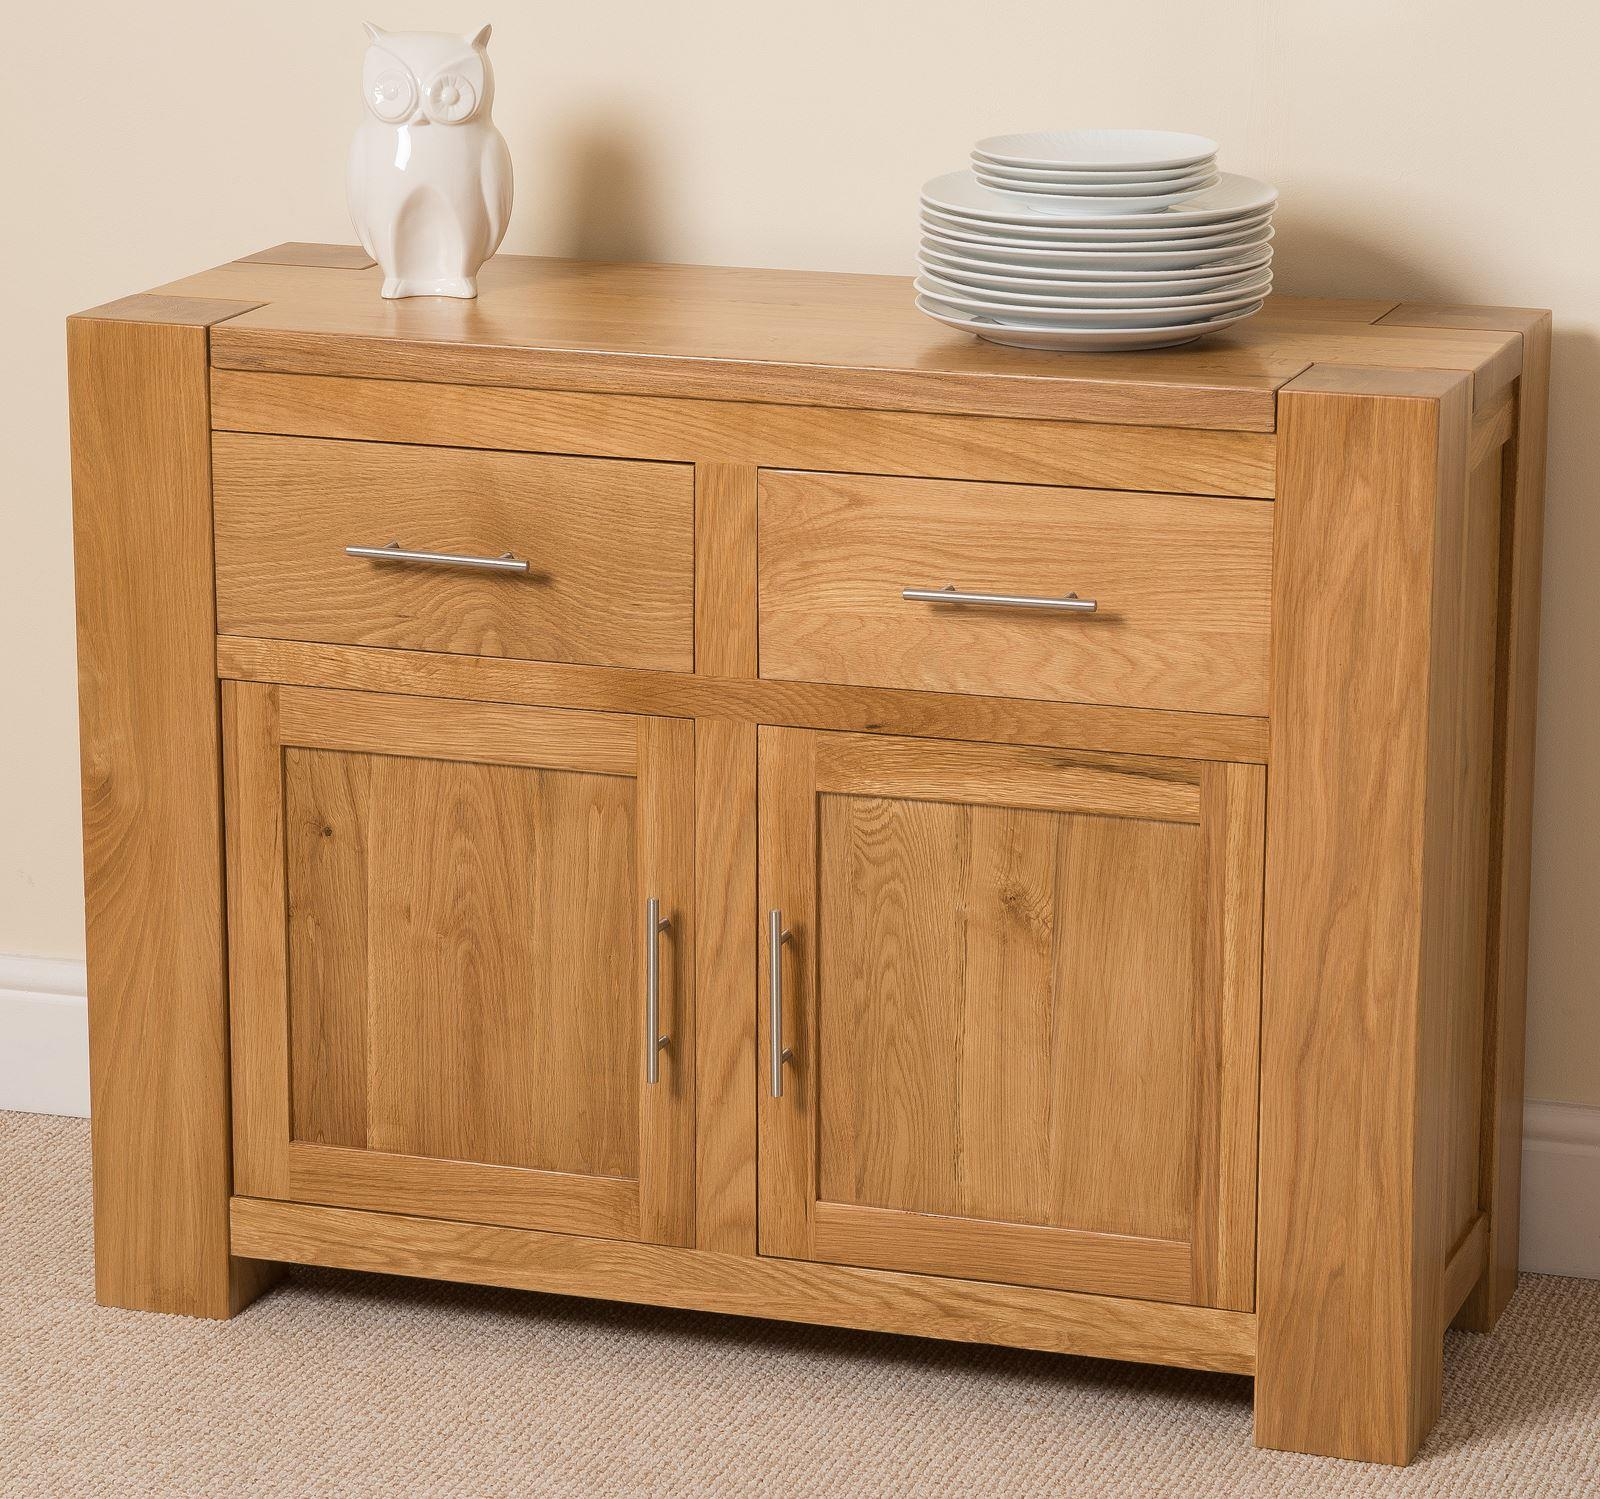 Kuba Solid Oak Small Sideboard